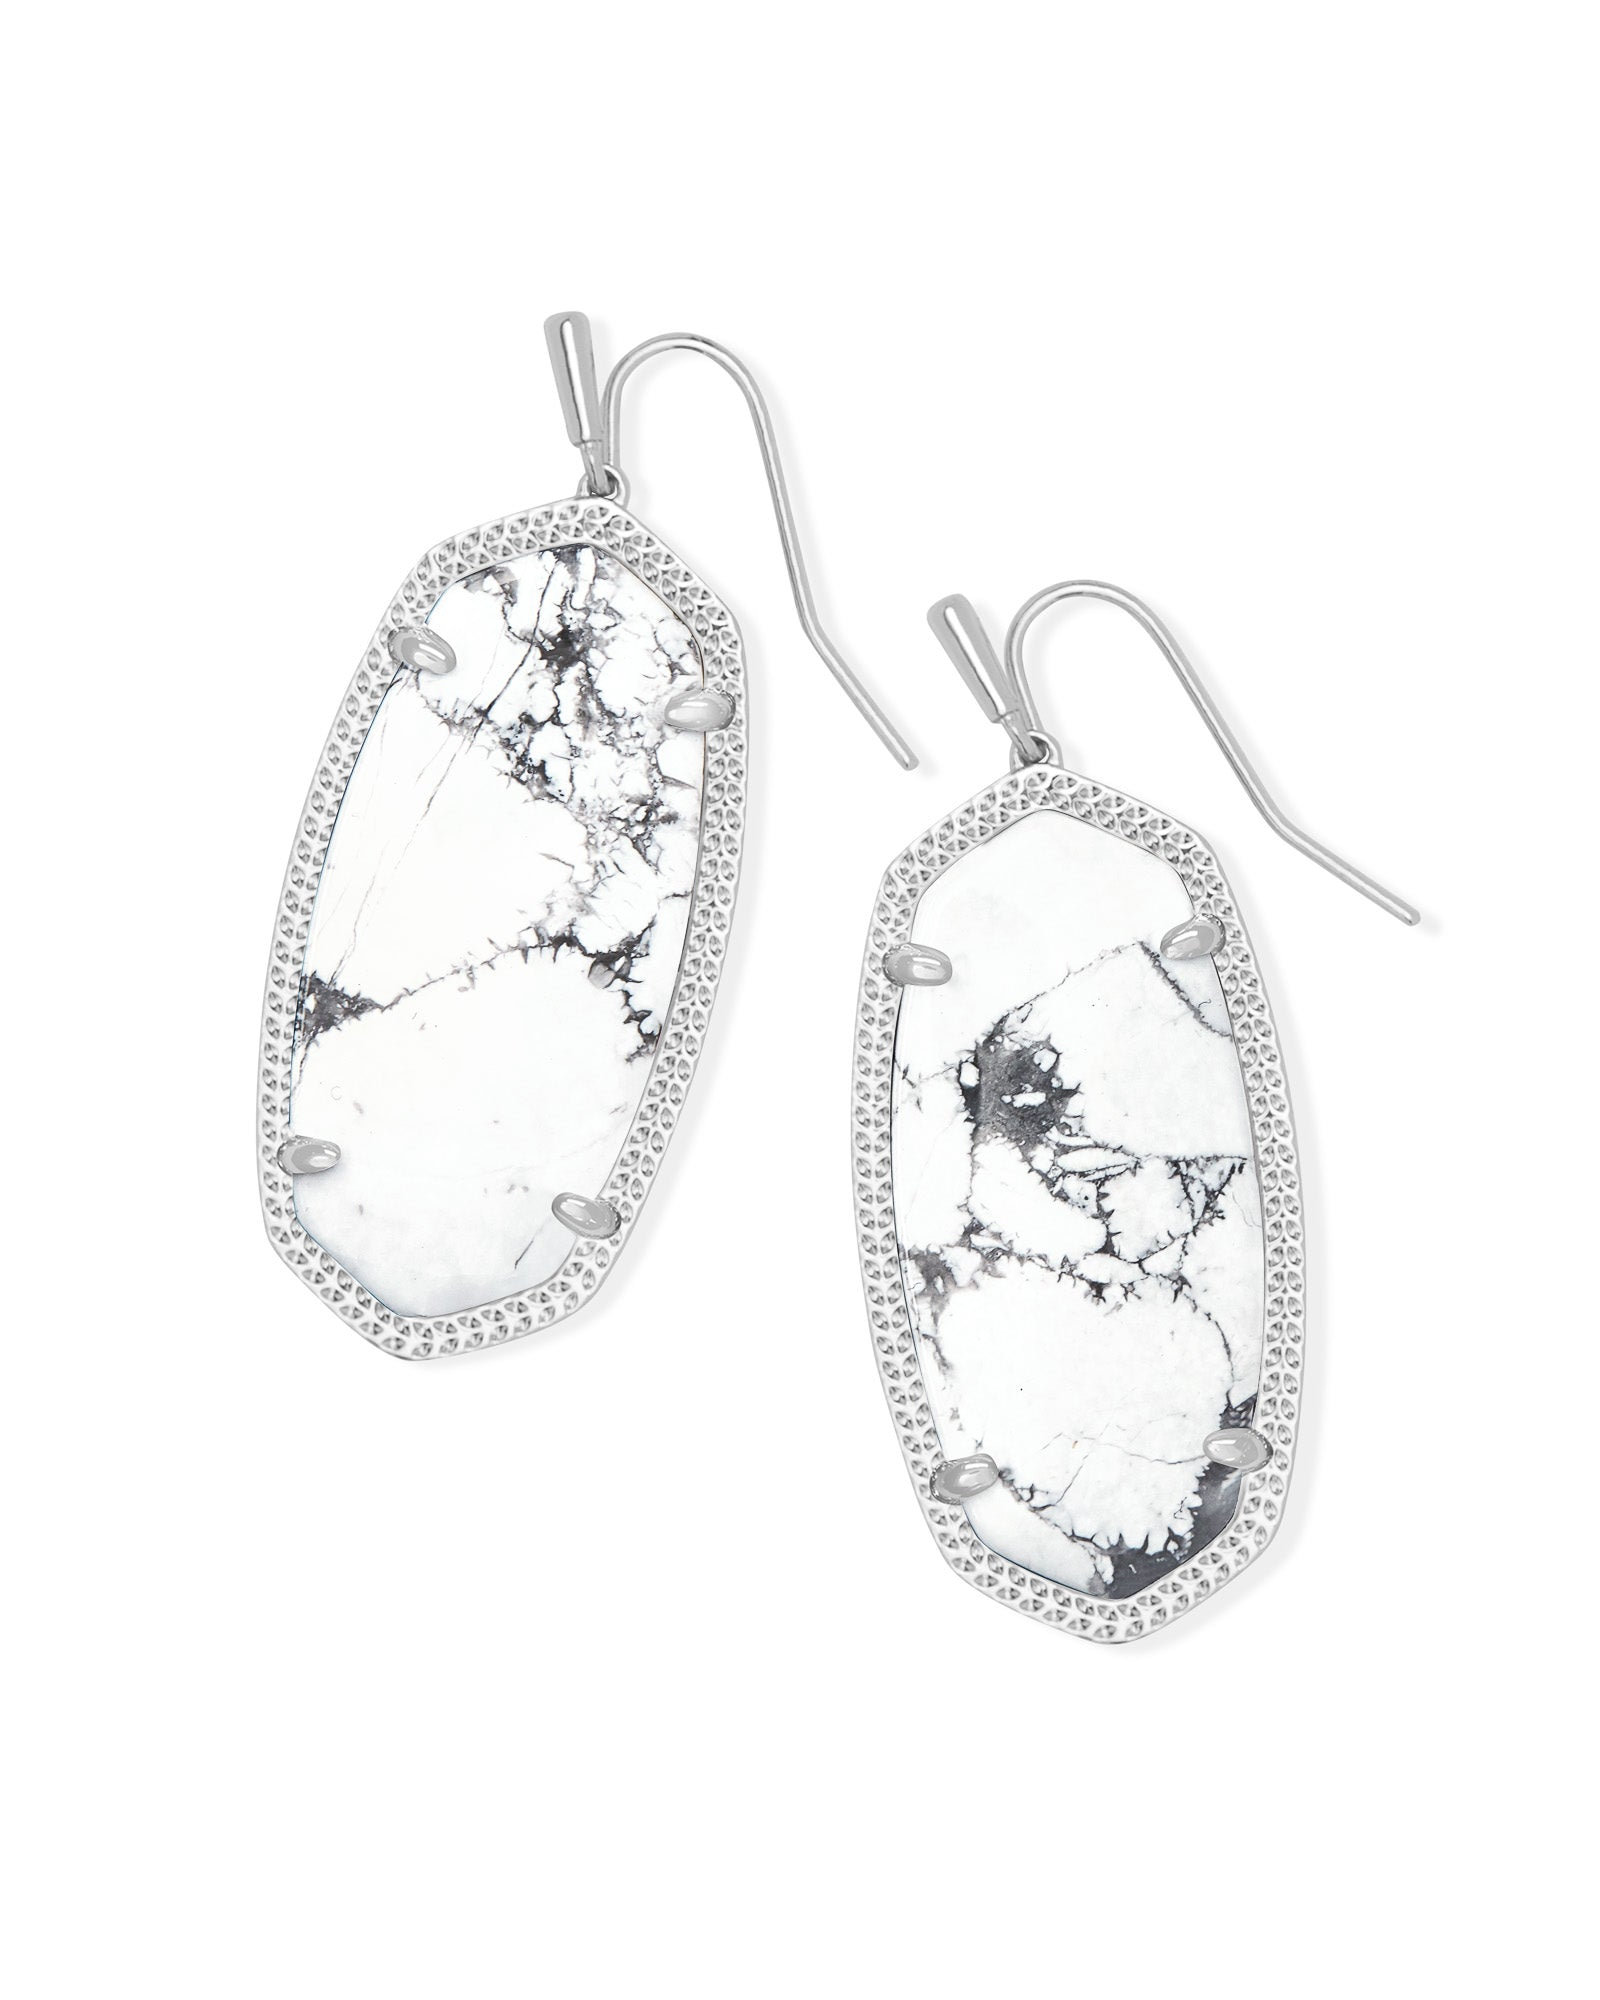 Kendra Scott Elle Silver Drop Earrings In White Howlite